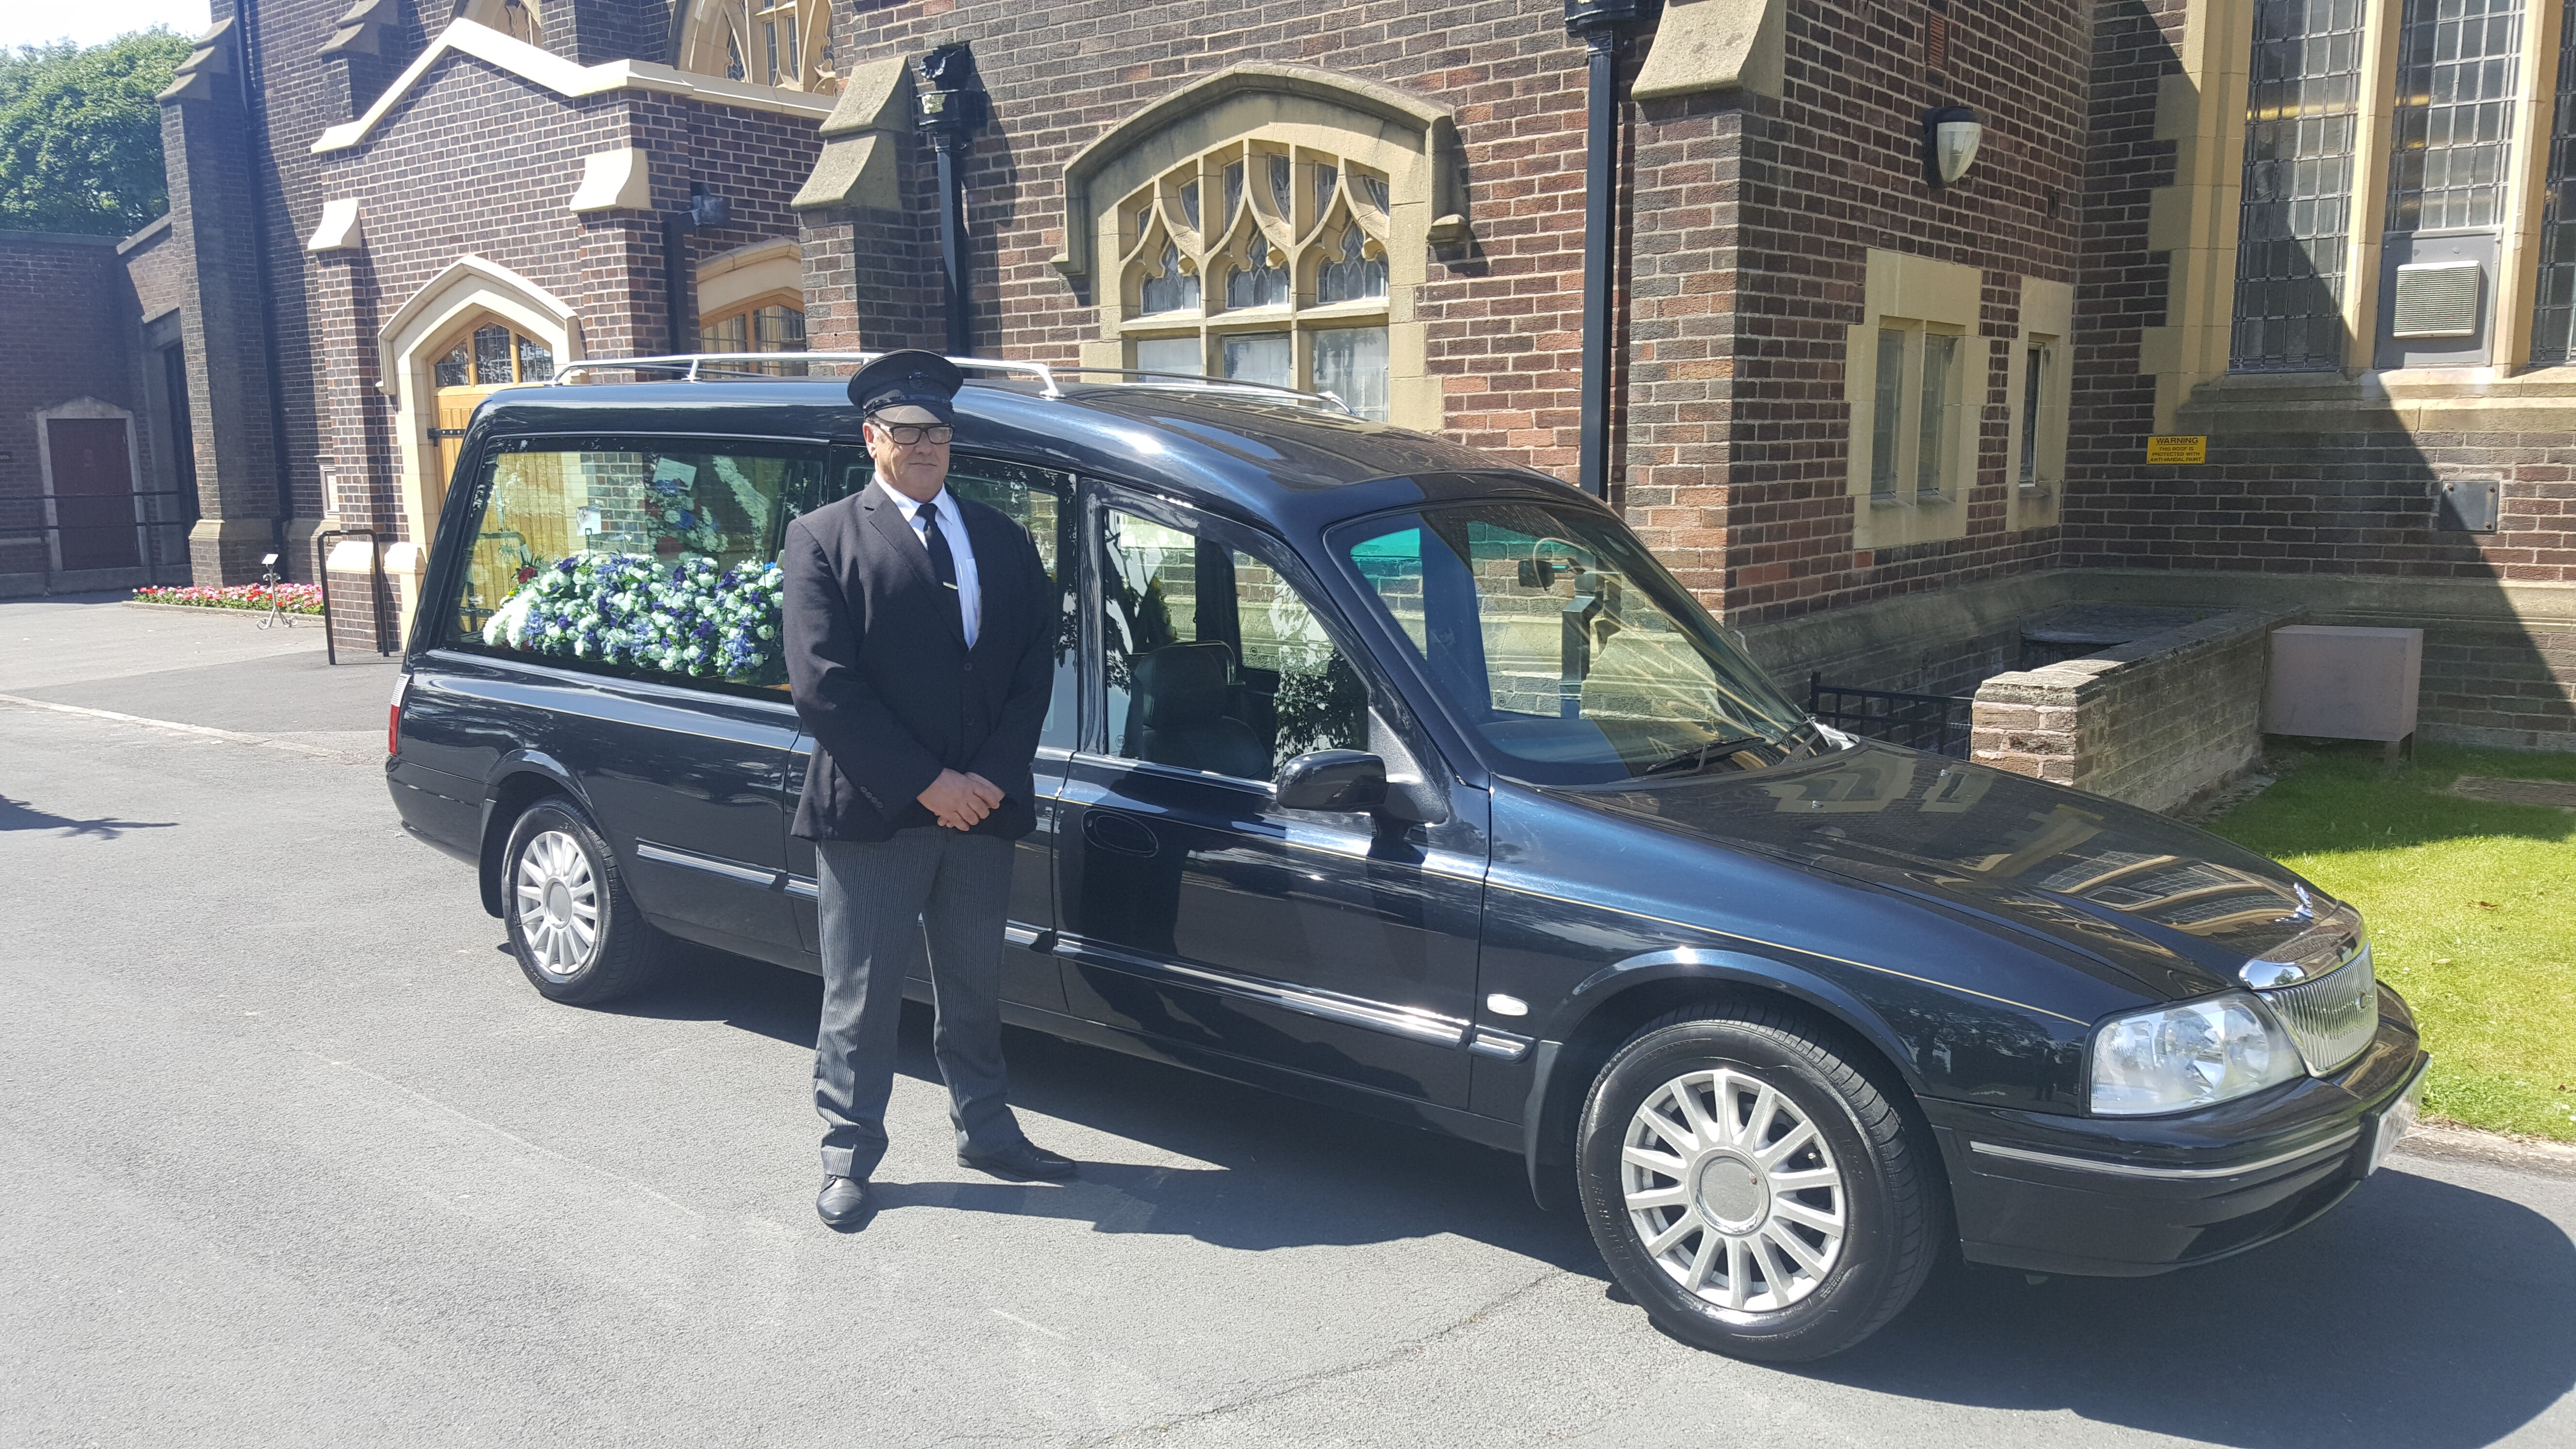 Blackpool Funeral Services